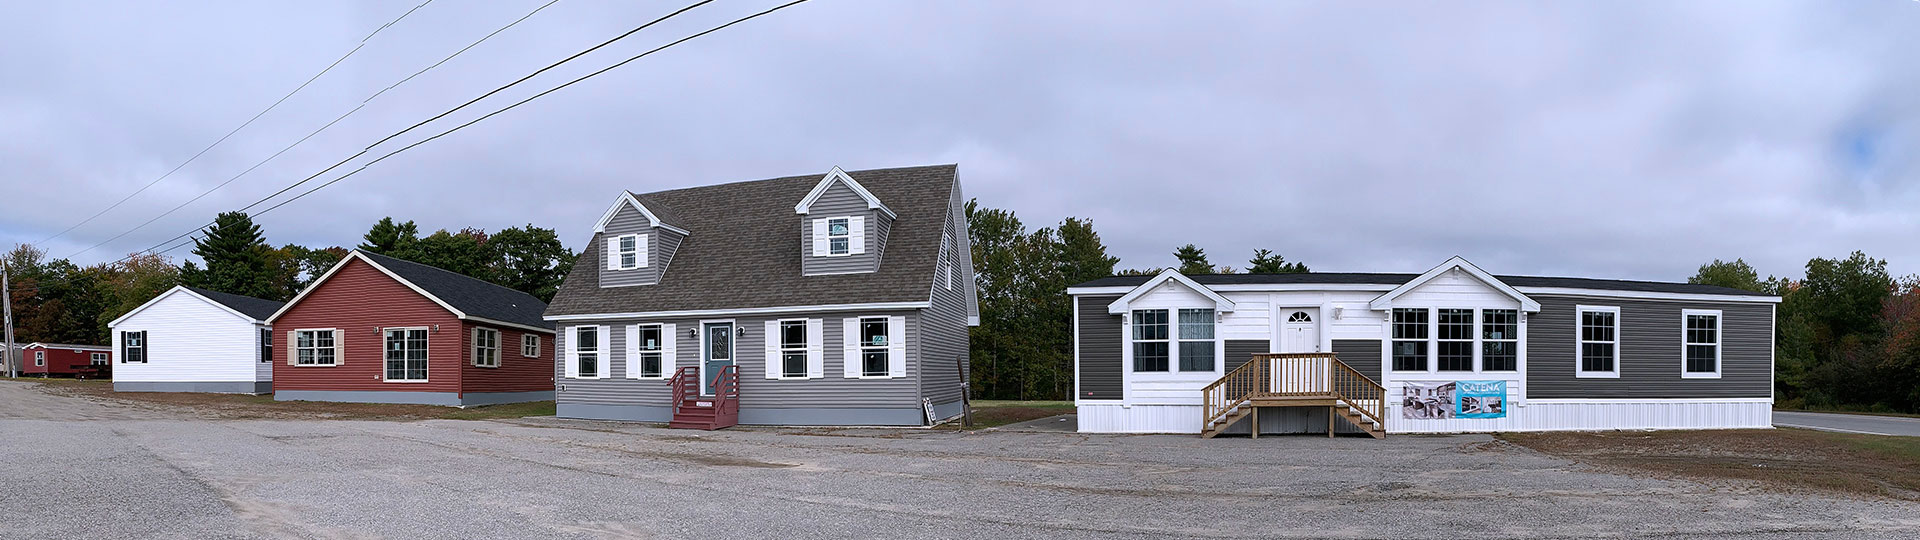 Swell Ralphs Homes A Maine Modular Manufactured Home Dealership Download Free Architecture Designs Scobabritishbridgeorg